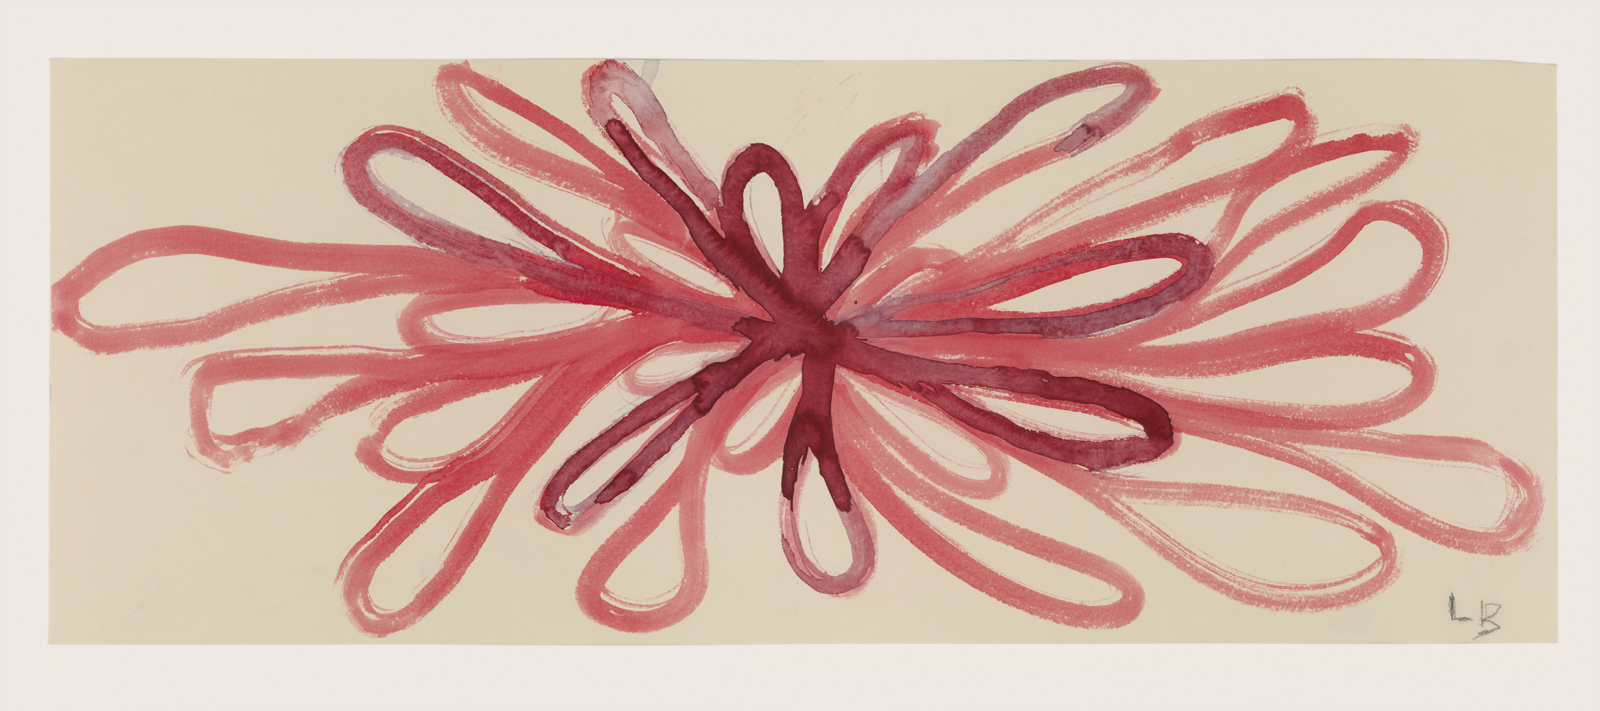 Louise Bourgeois / Hauser & Wirth